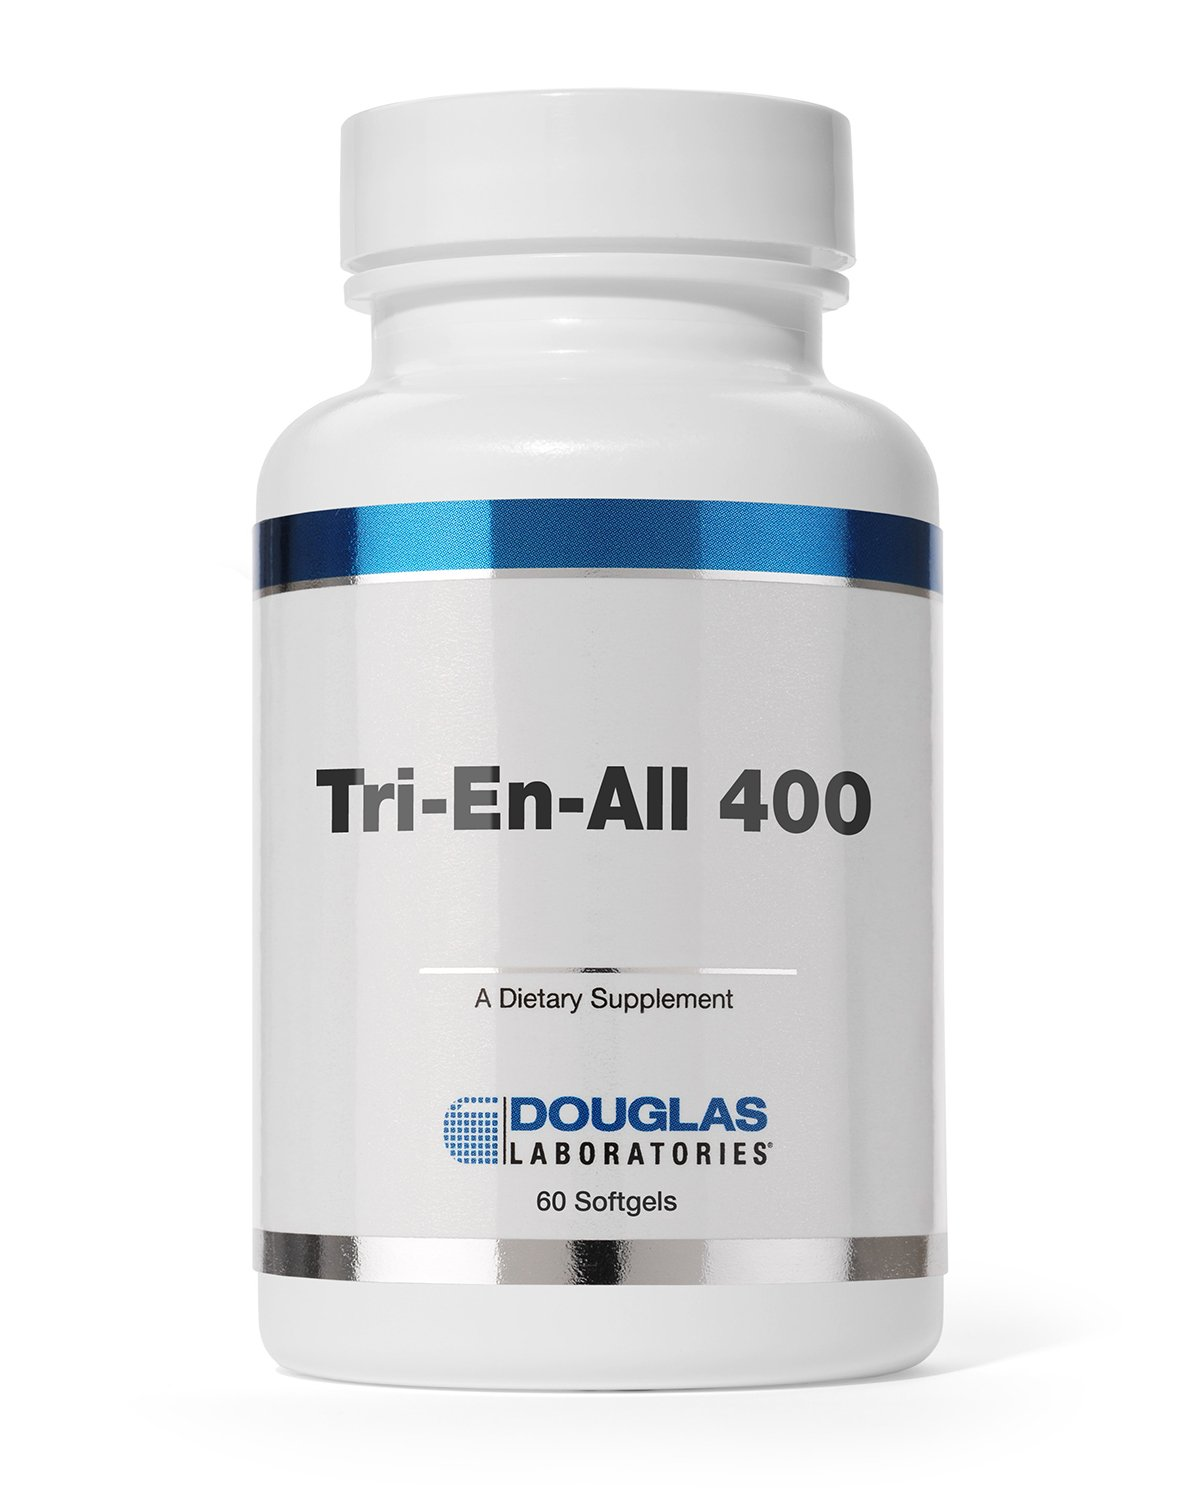 Douglas Laboratories - Tri-En-All 400 - Supplement for Heart Health* - 60 Softgels by Douglas Laboratories (Image #1)